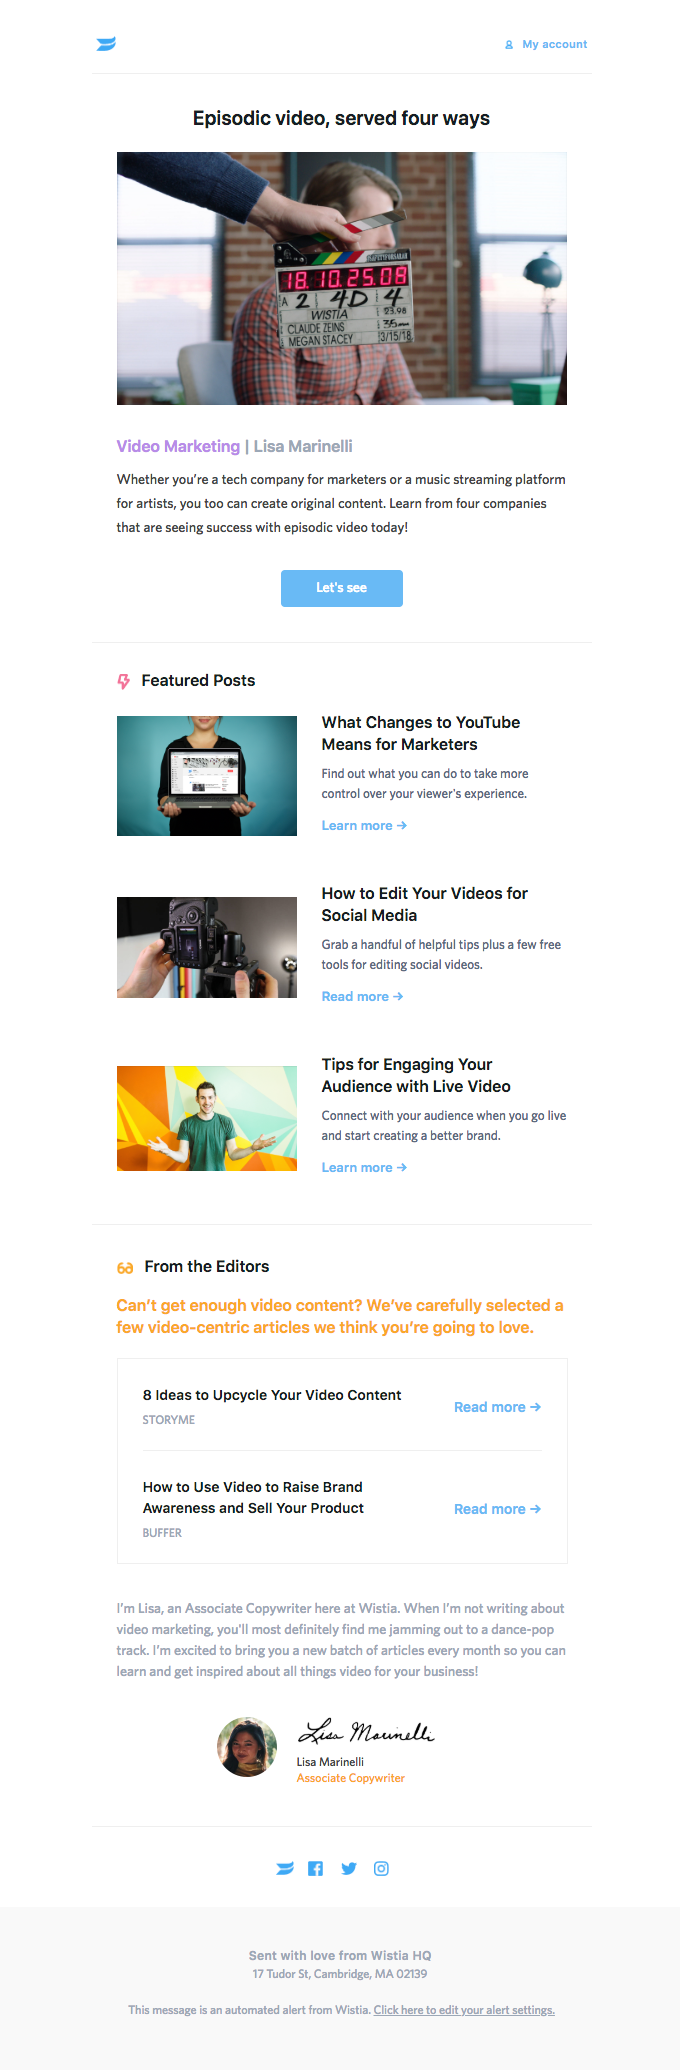 The January Wistia Content Roundup: Fresh video marketing insights to help you stay ahead.